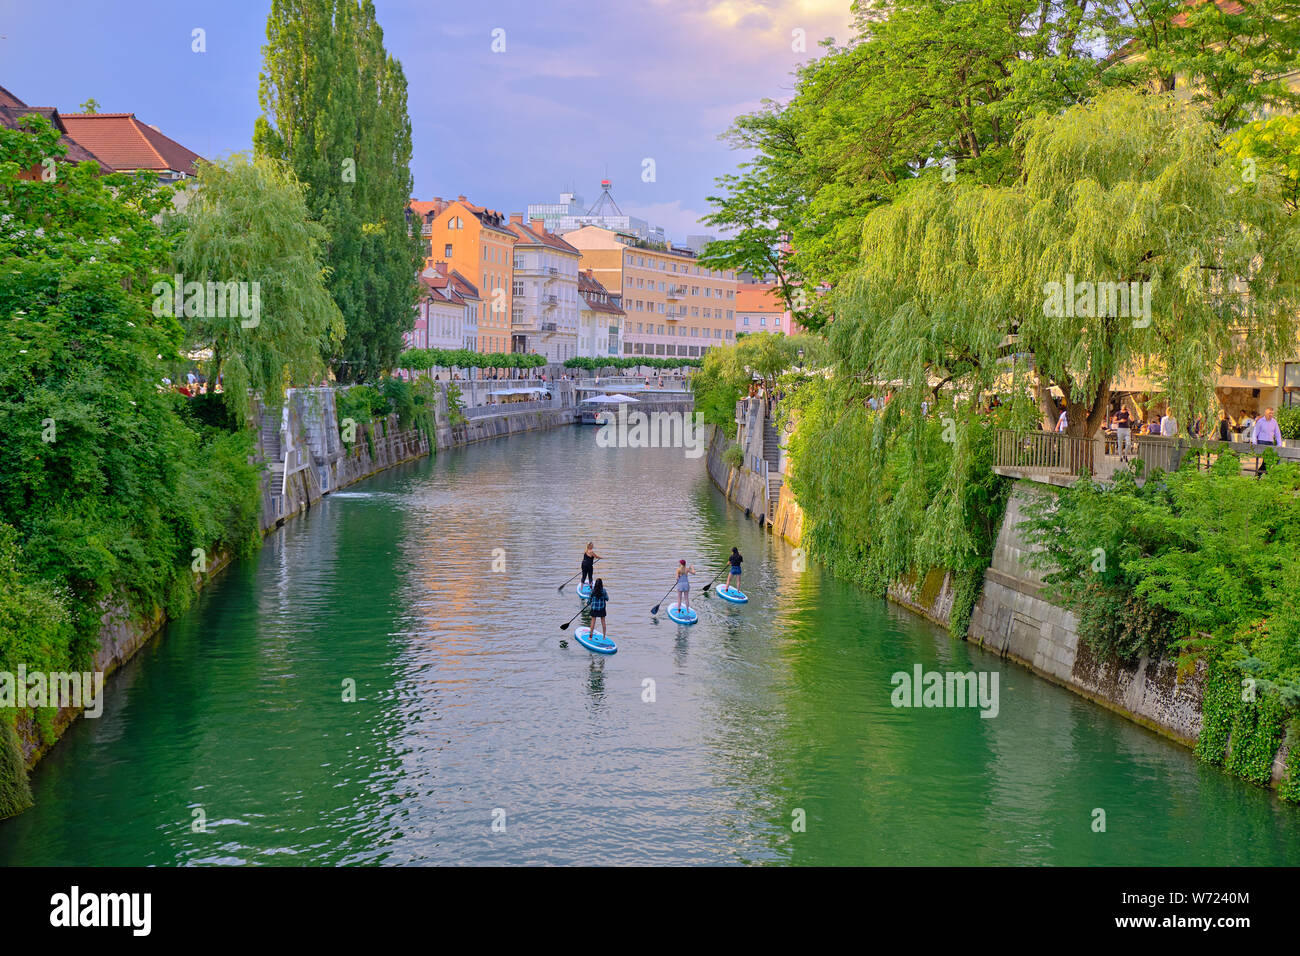 tourist-riding-stand-up-paddle-board-down-the-river-through-the-historic-city-centre-of-ljubljana-slovenia-june-2019-W7240M.jpg